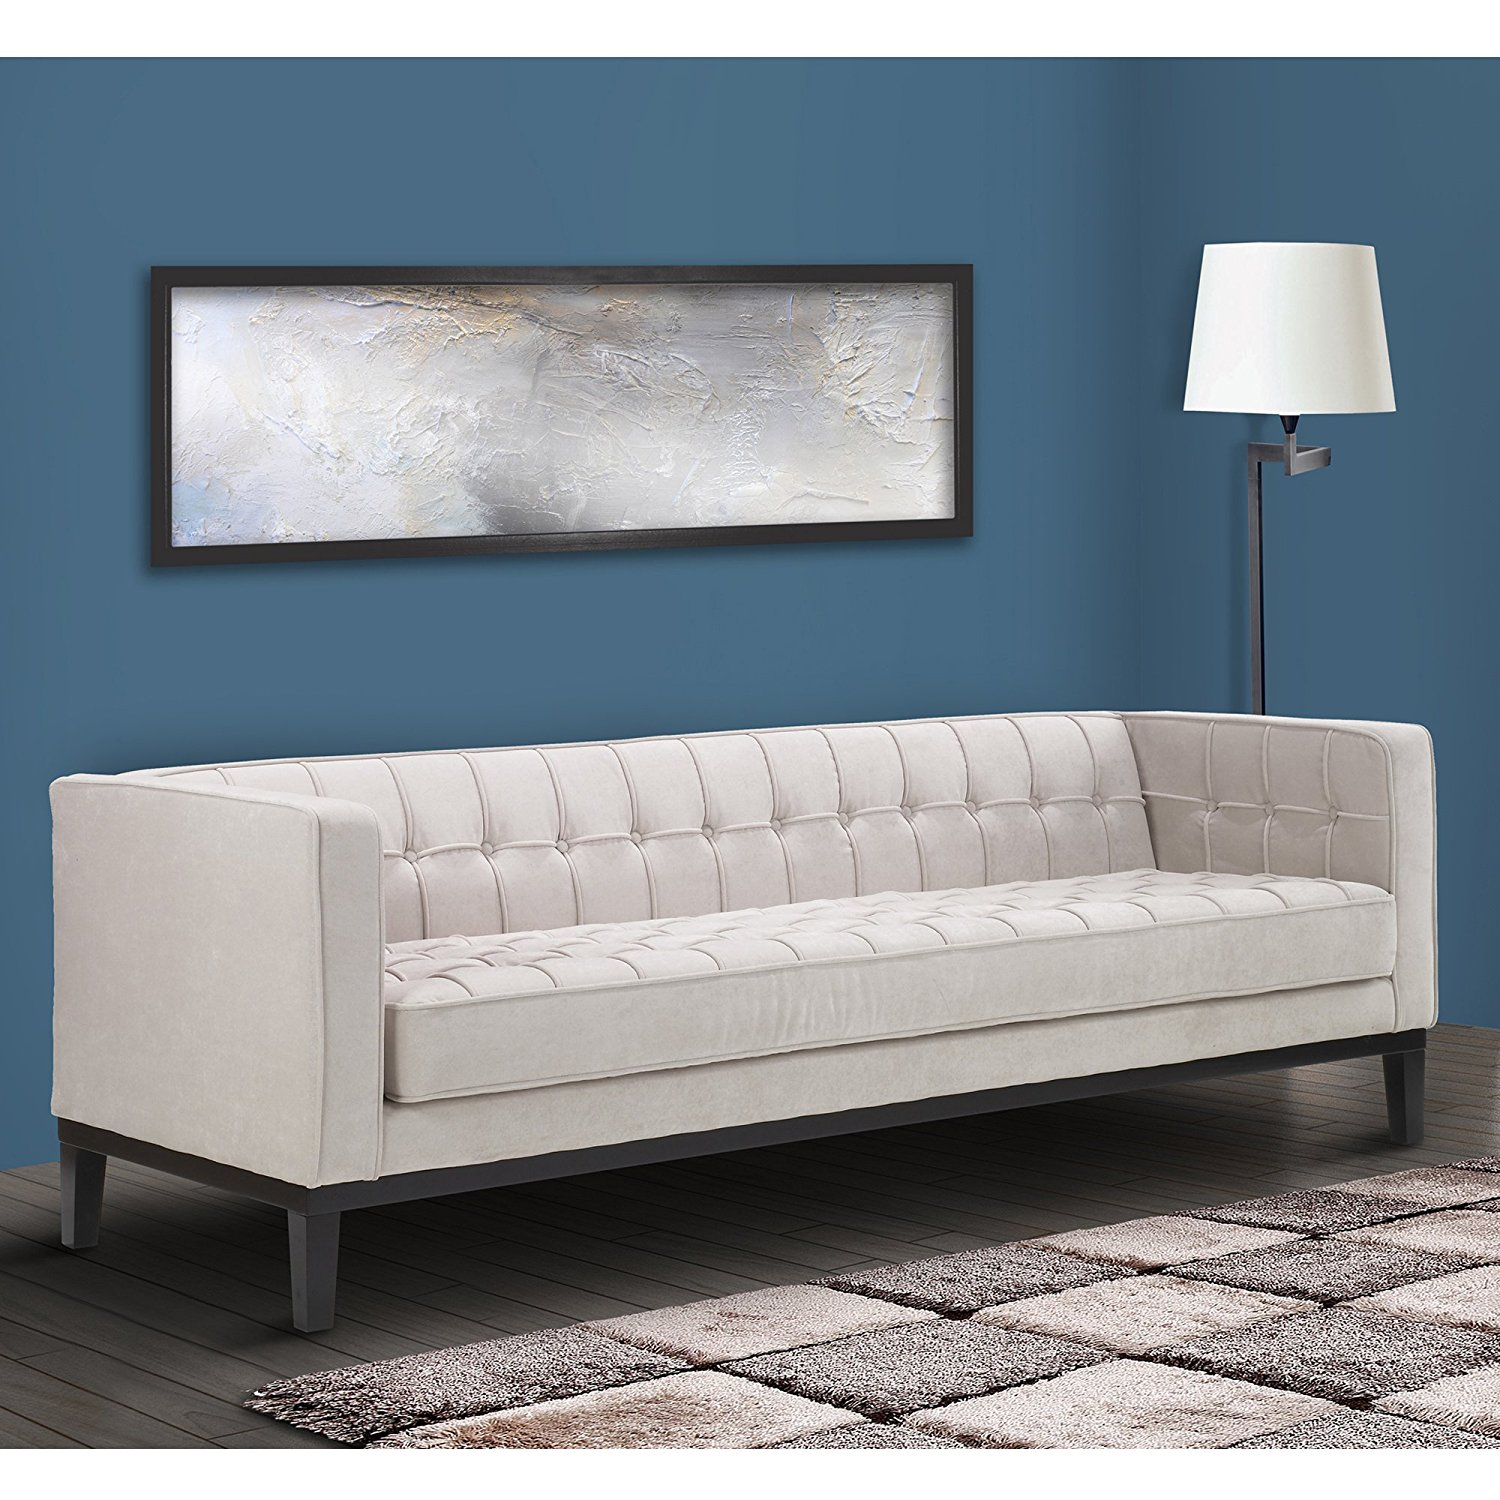 Cheap Sofa Sets: 18 Jawdroppingly Cheap Sofa Sets You Must Buy For Living